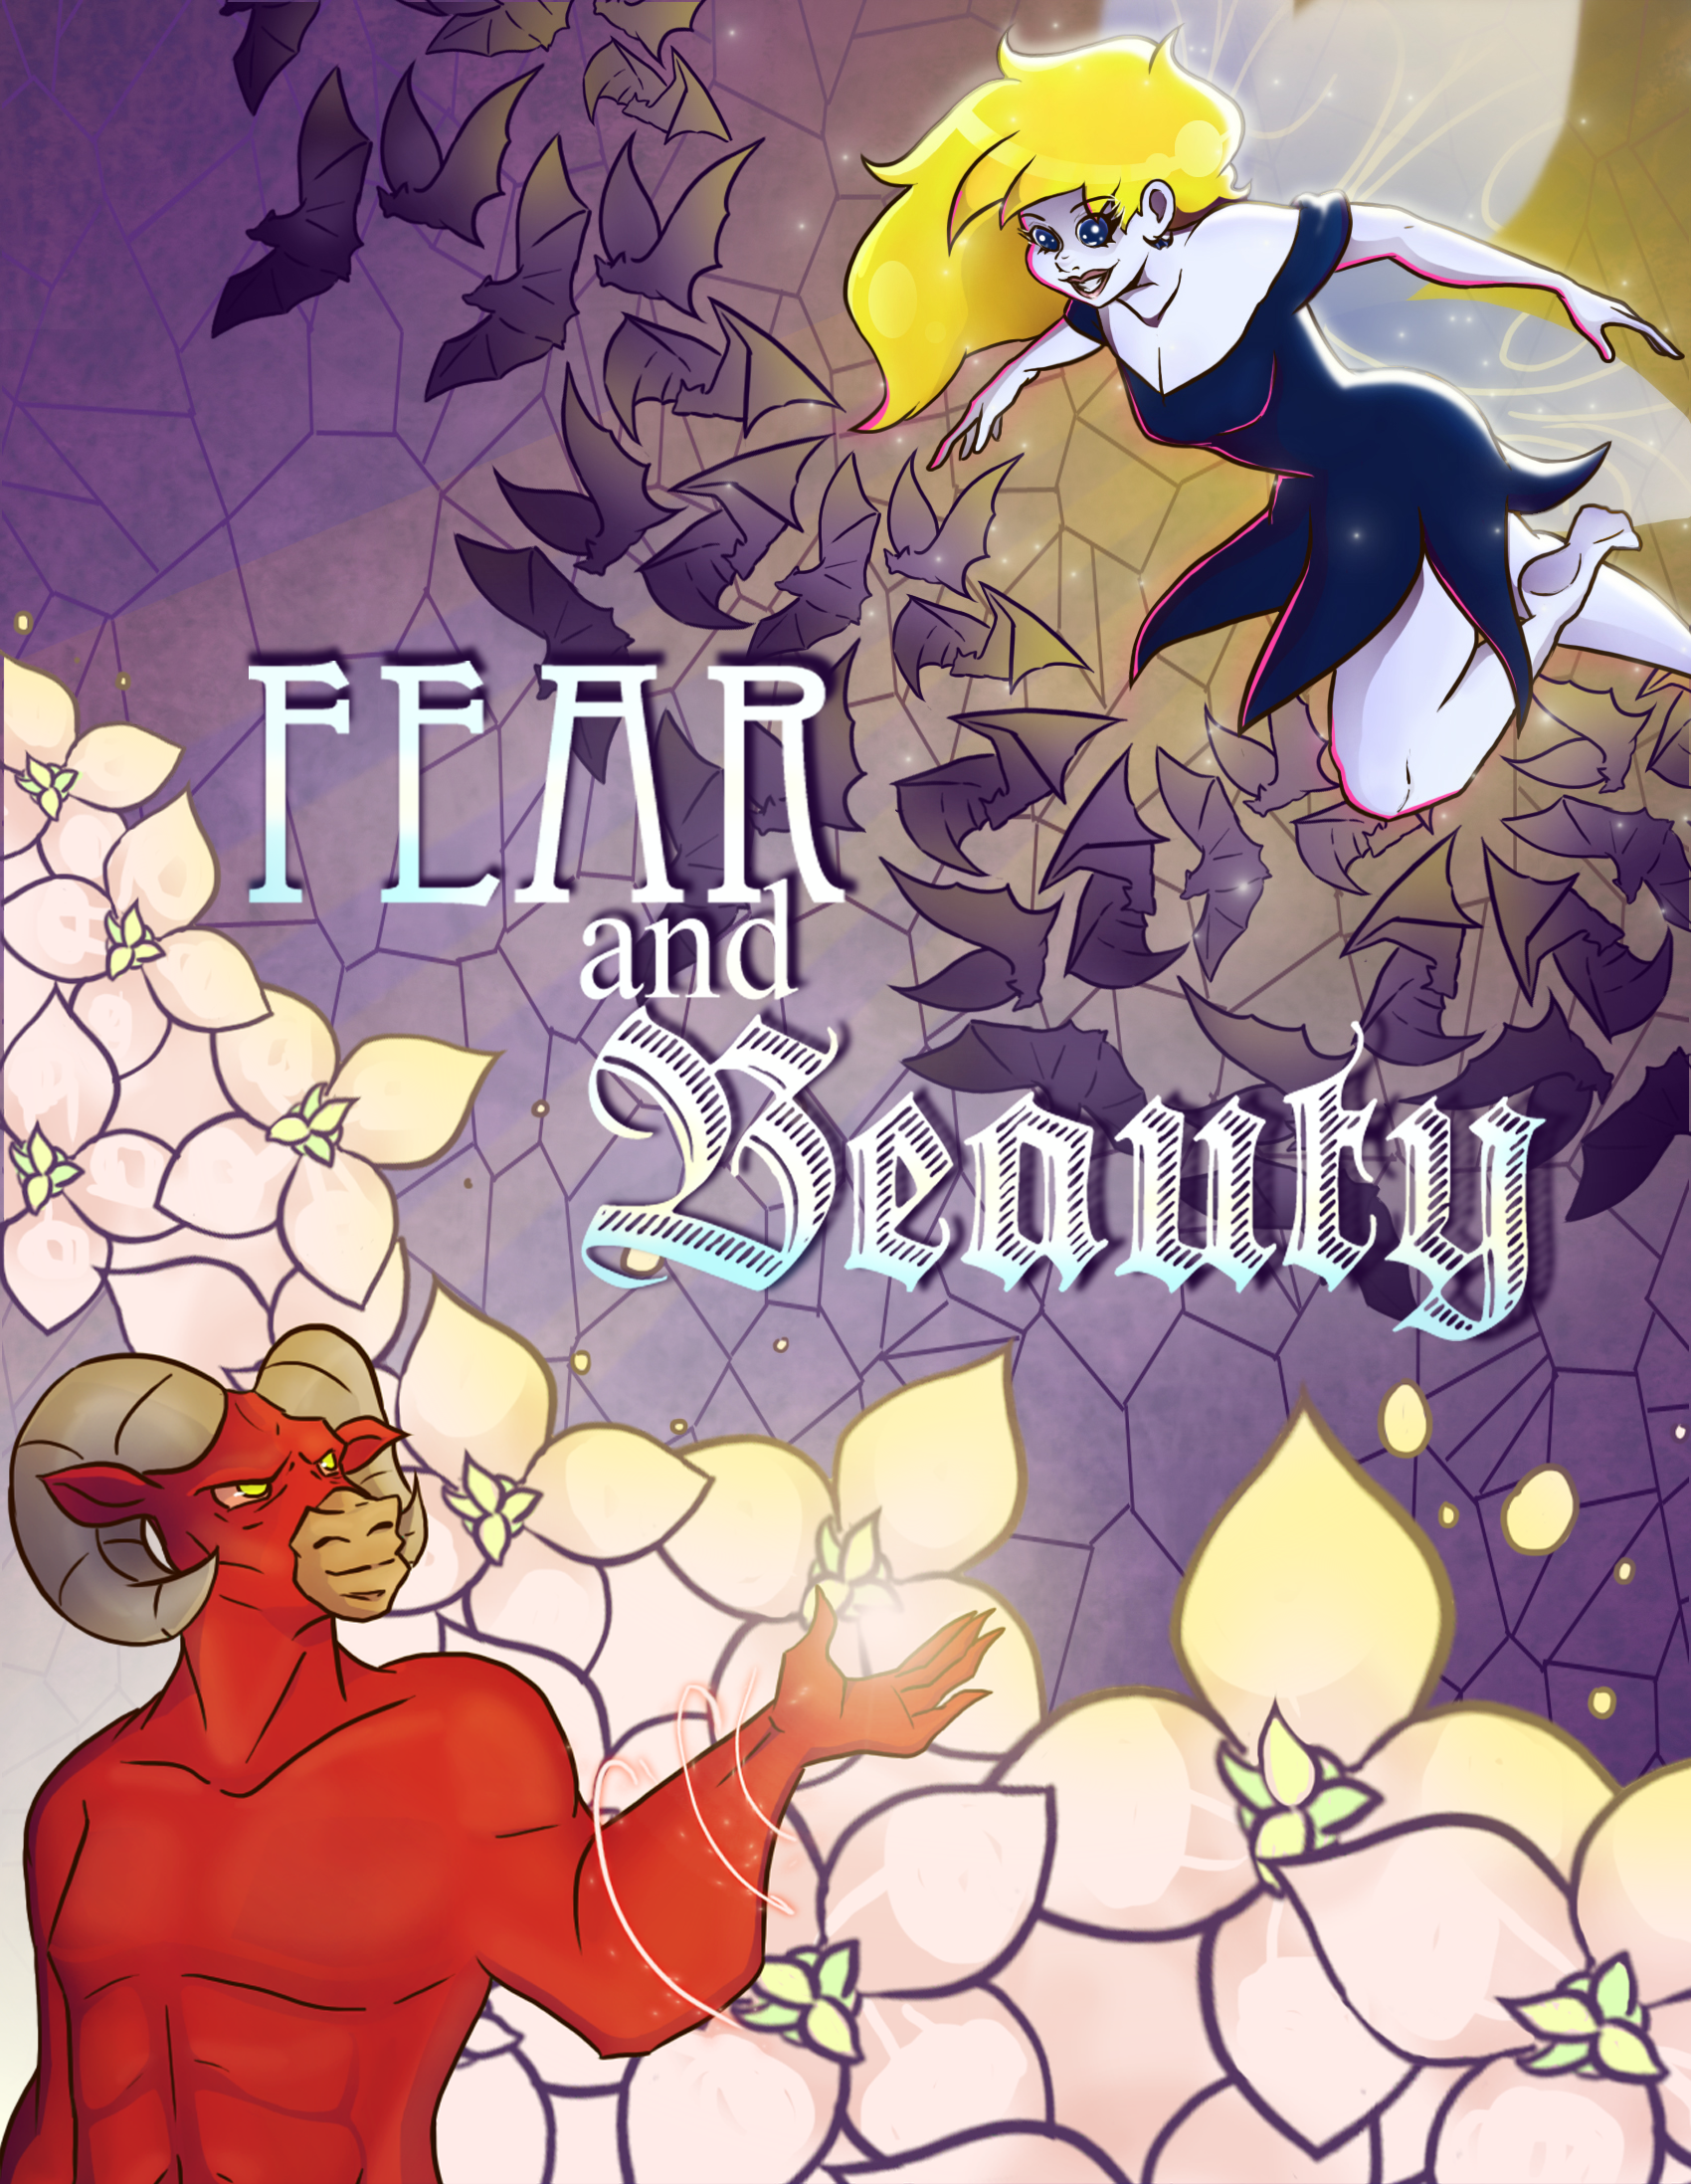 Fear and Beauty